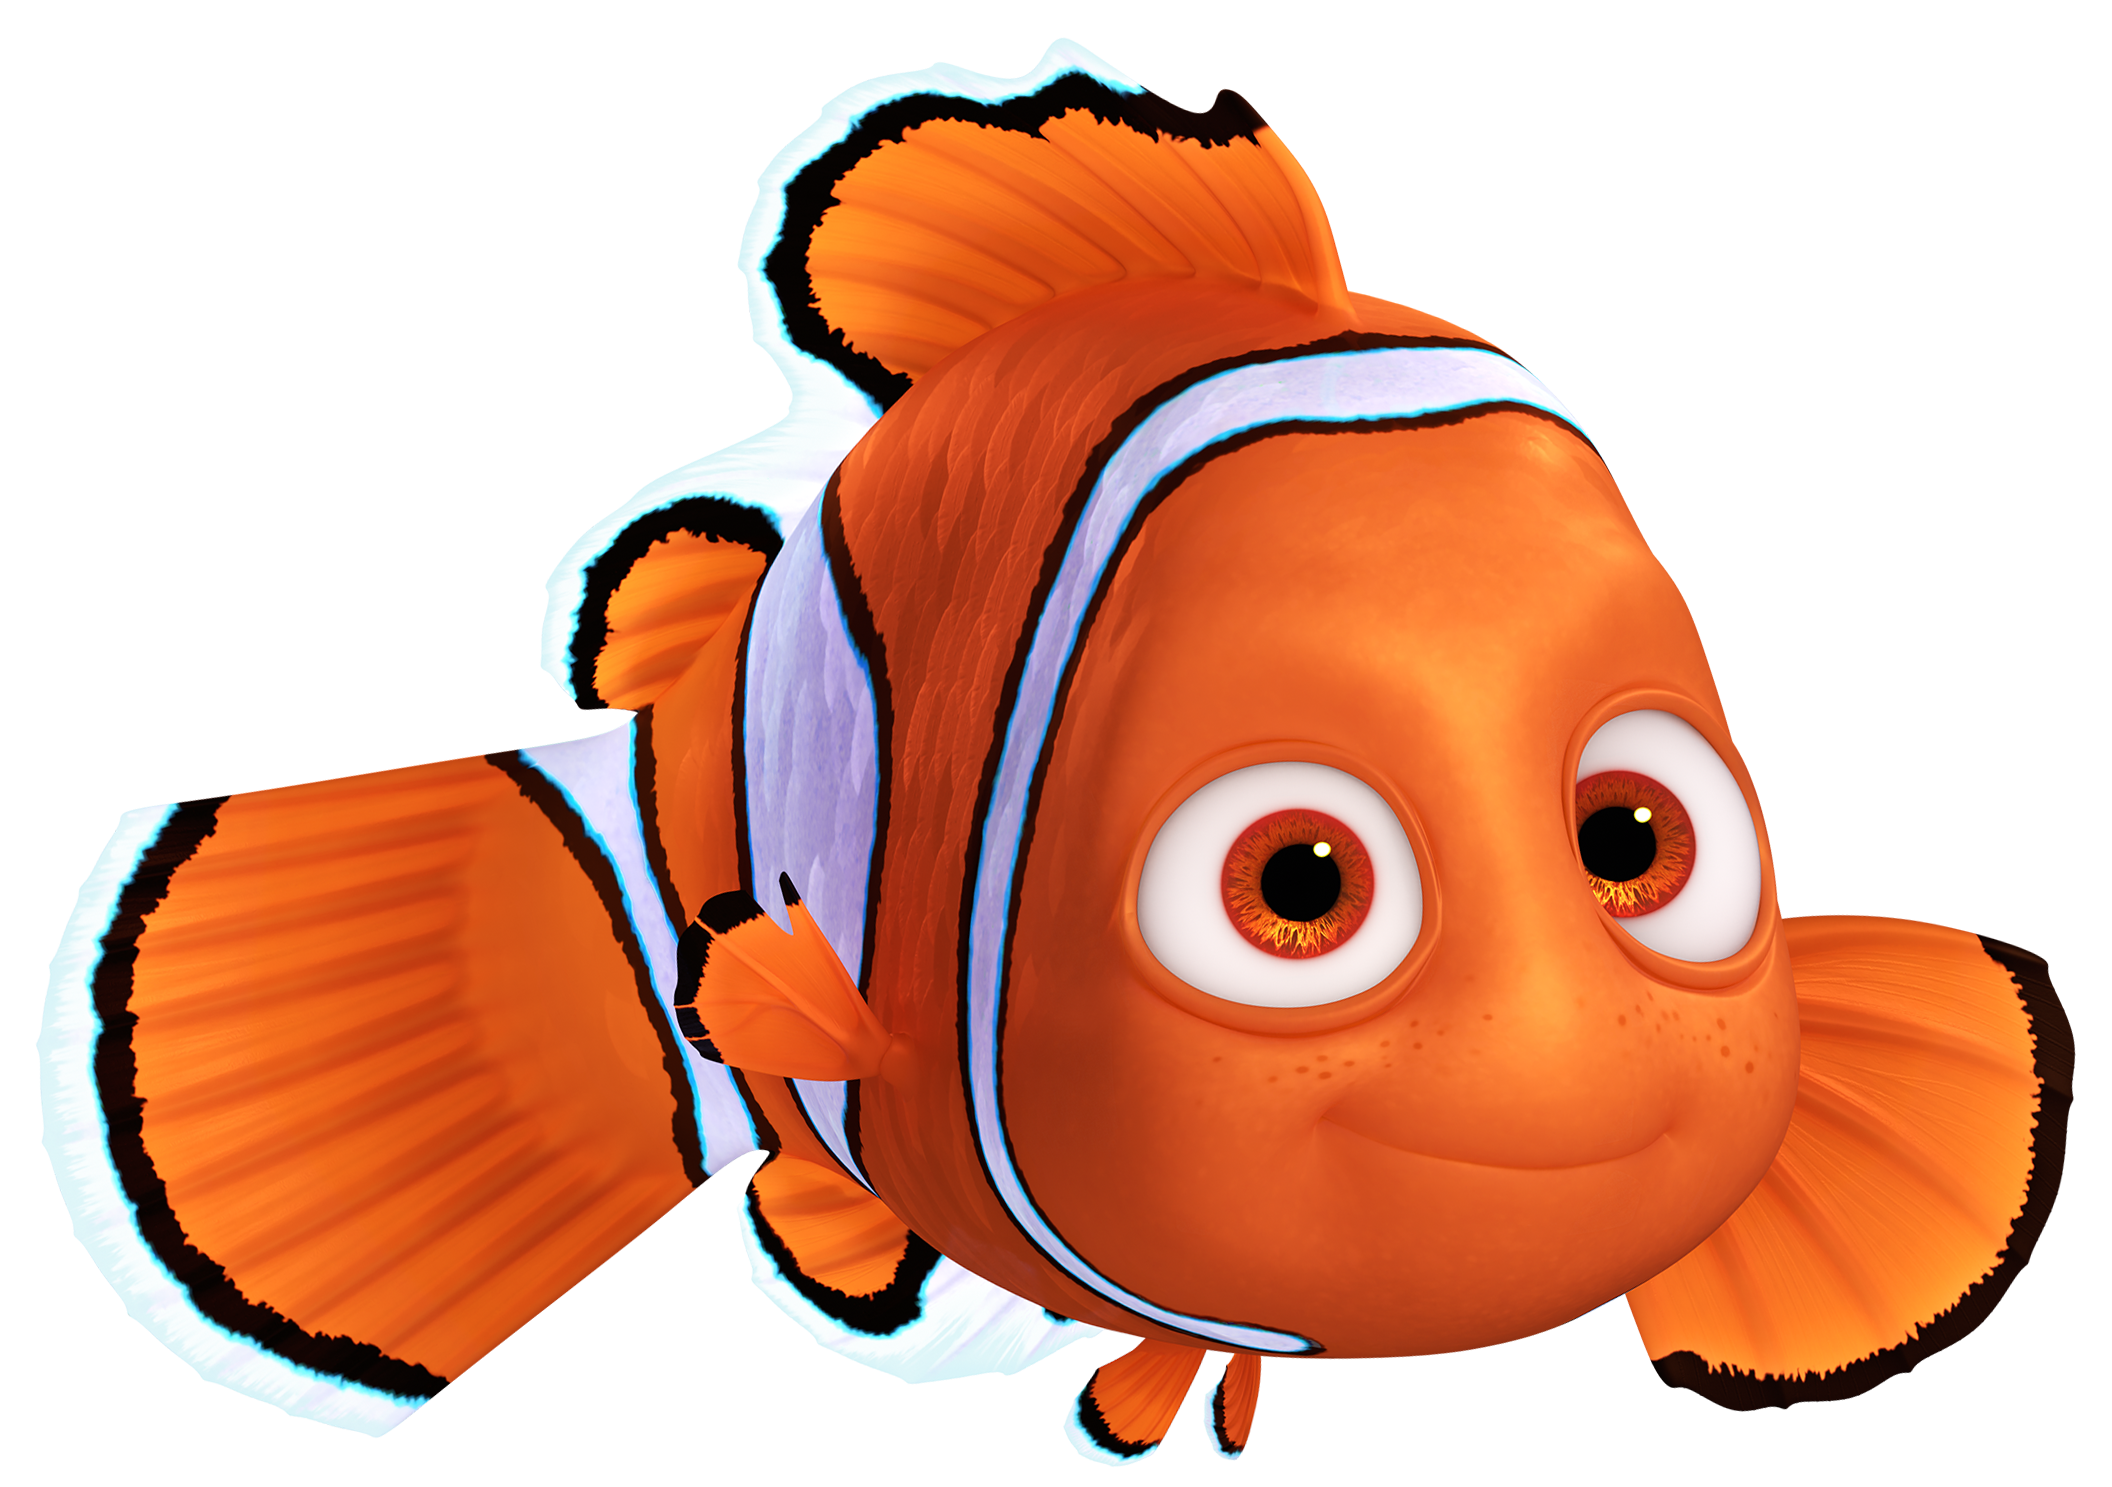 Bailey from dory fish clipart banner download Nemo | Jack Miller's Webpage of Disney Wiki | FANDOM powered by Wikia banner download